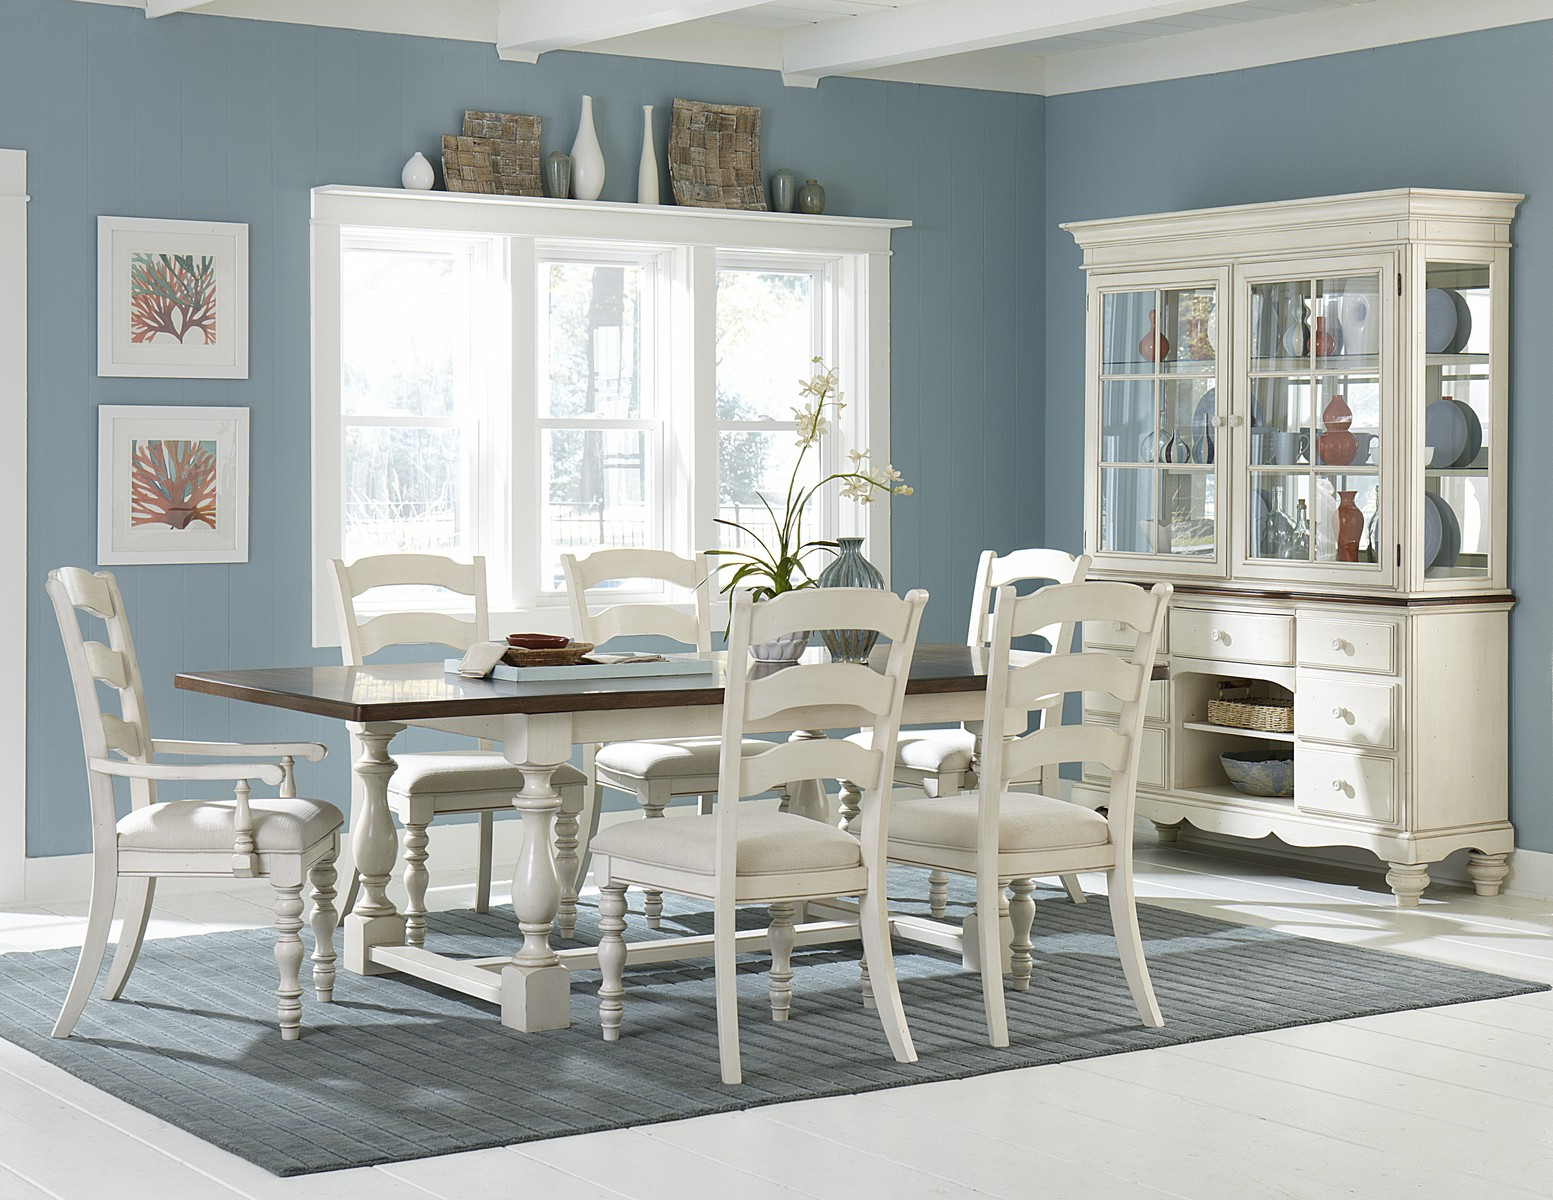 Hillsdale Pine Island 7 PC Trestle Dining Set with Ladder Back Chairs - Old White